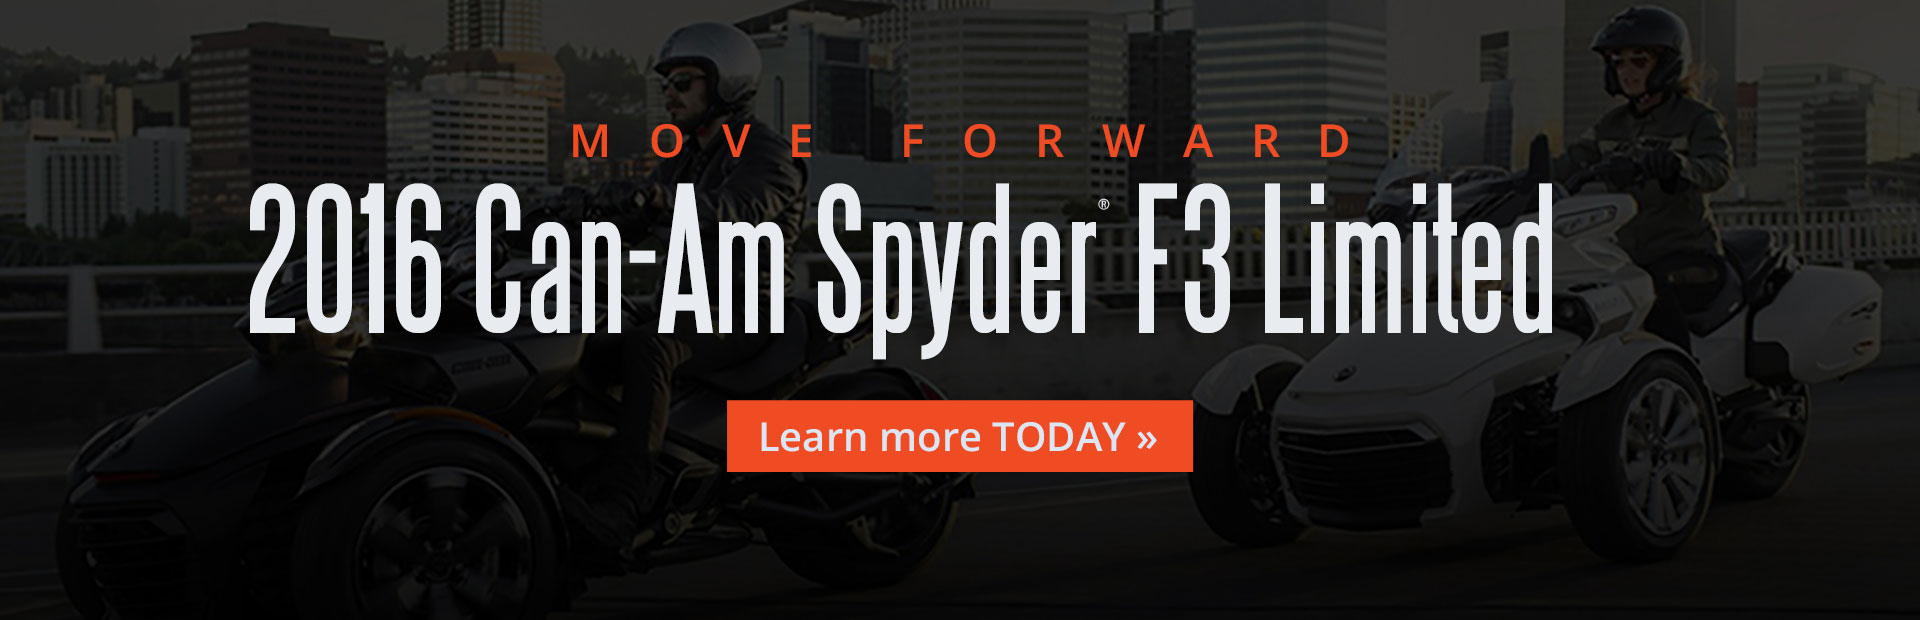 2016 Can-Am Spyder® F3 Limited: Click here for details.